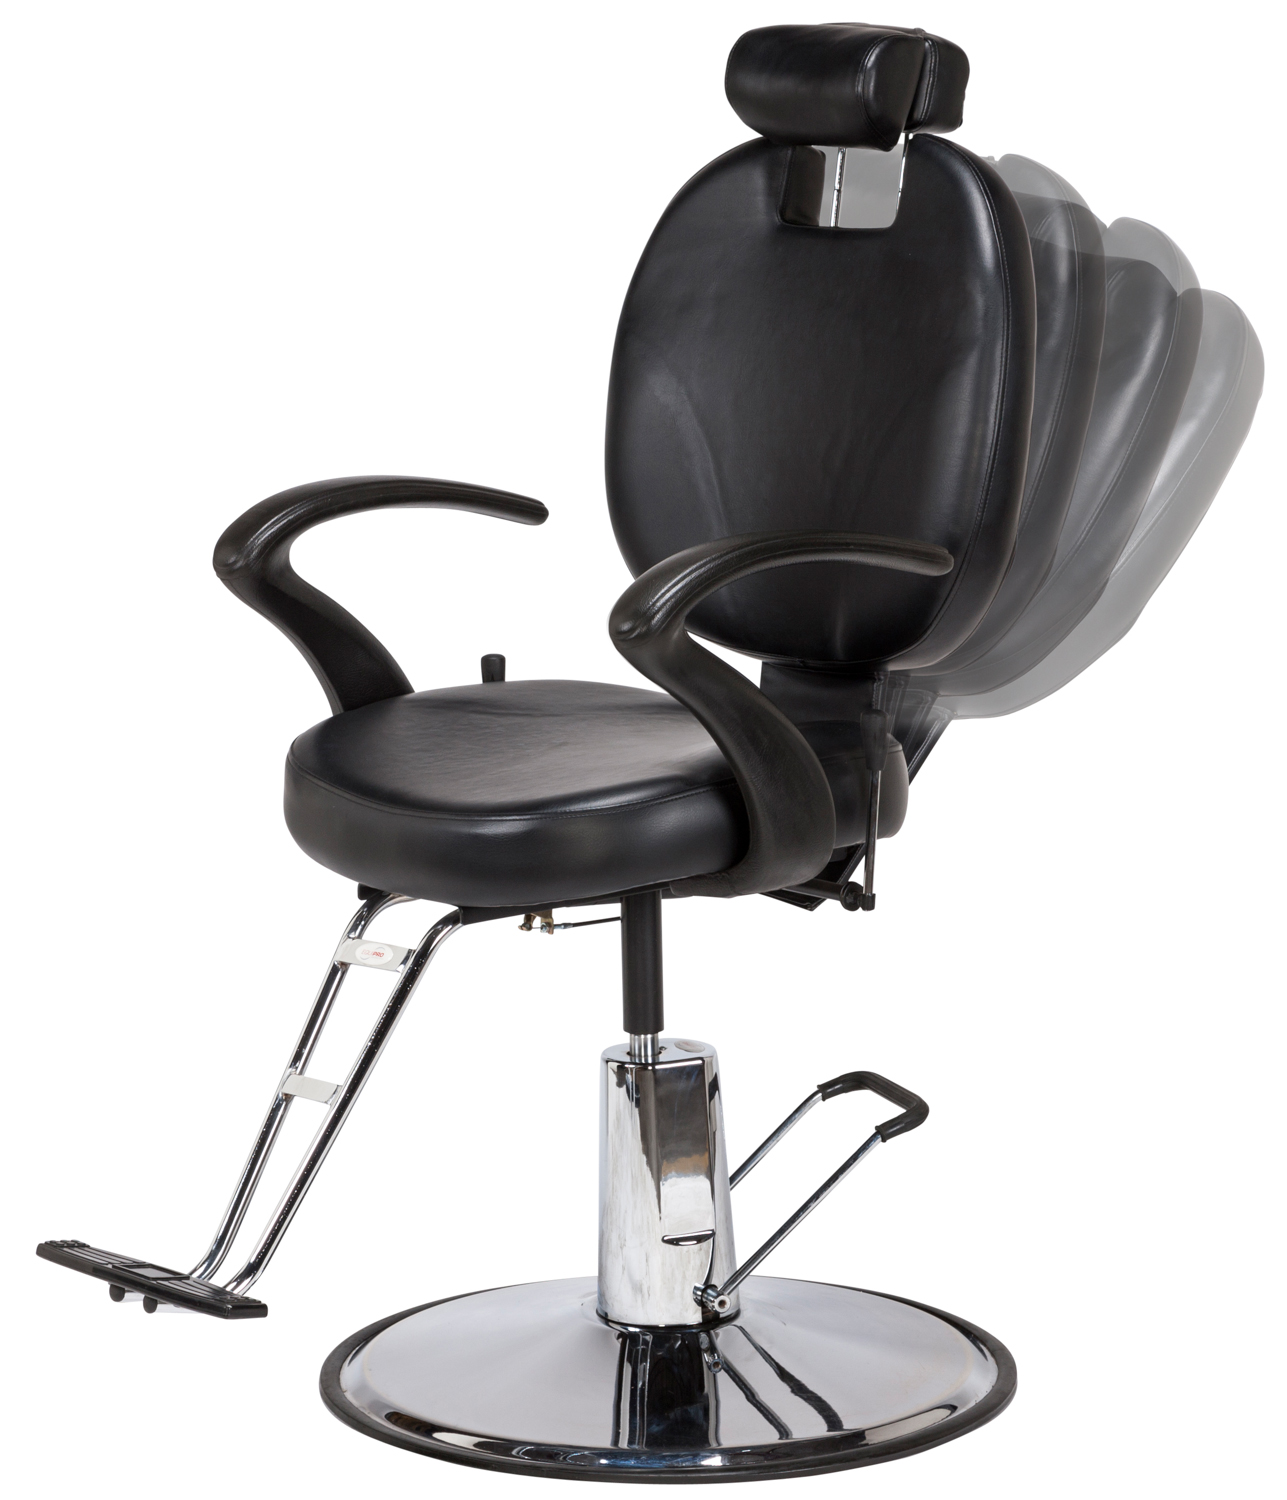 HYDRAULIC MAKE UP CHAIR Make up chairs Equipro Beauty Equipment